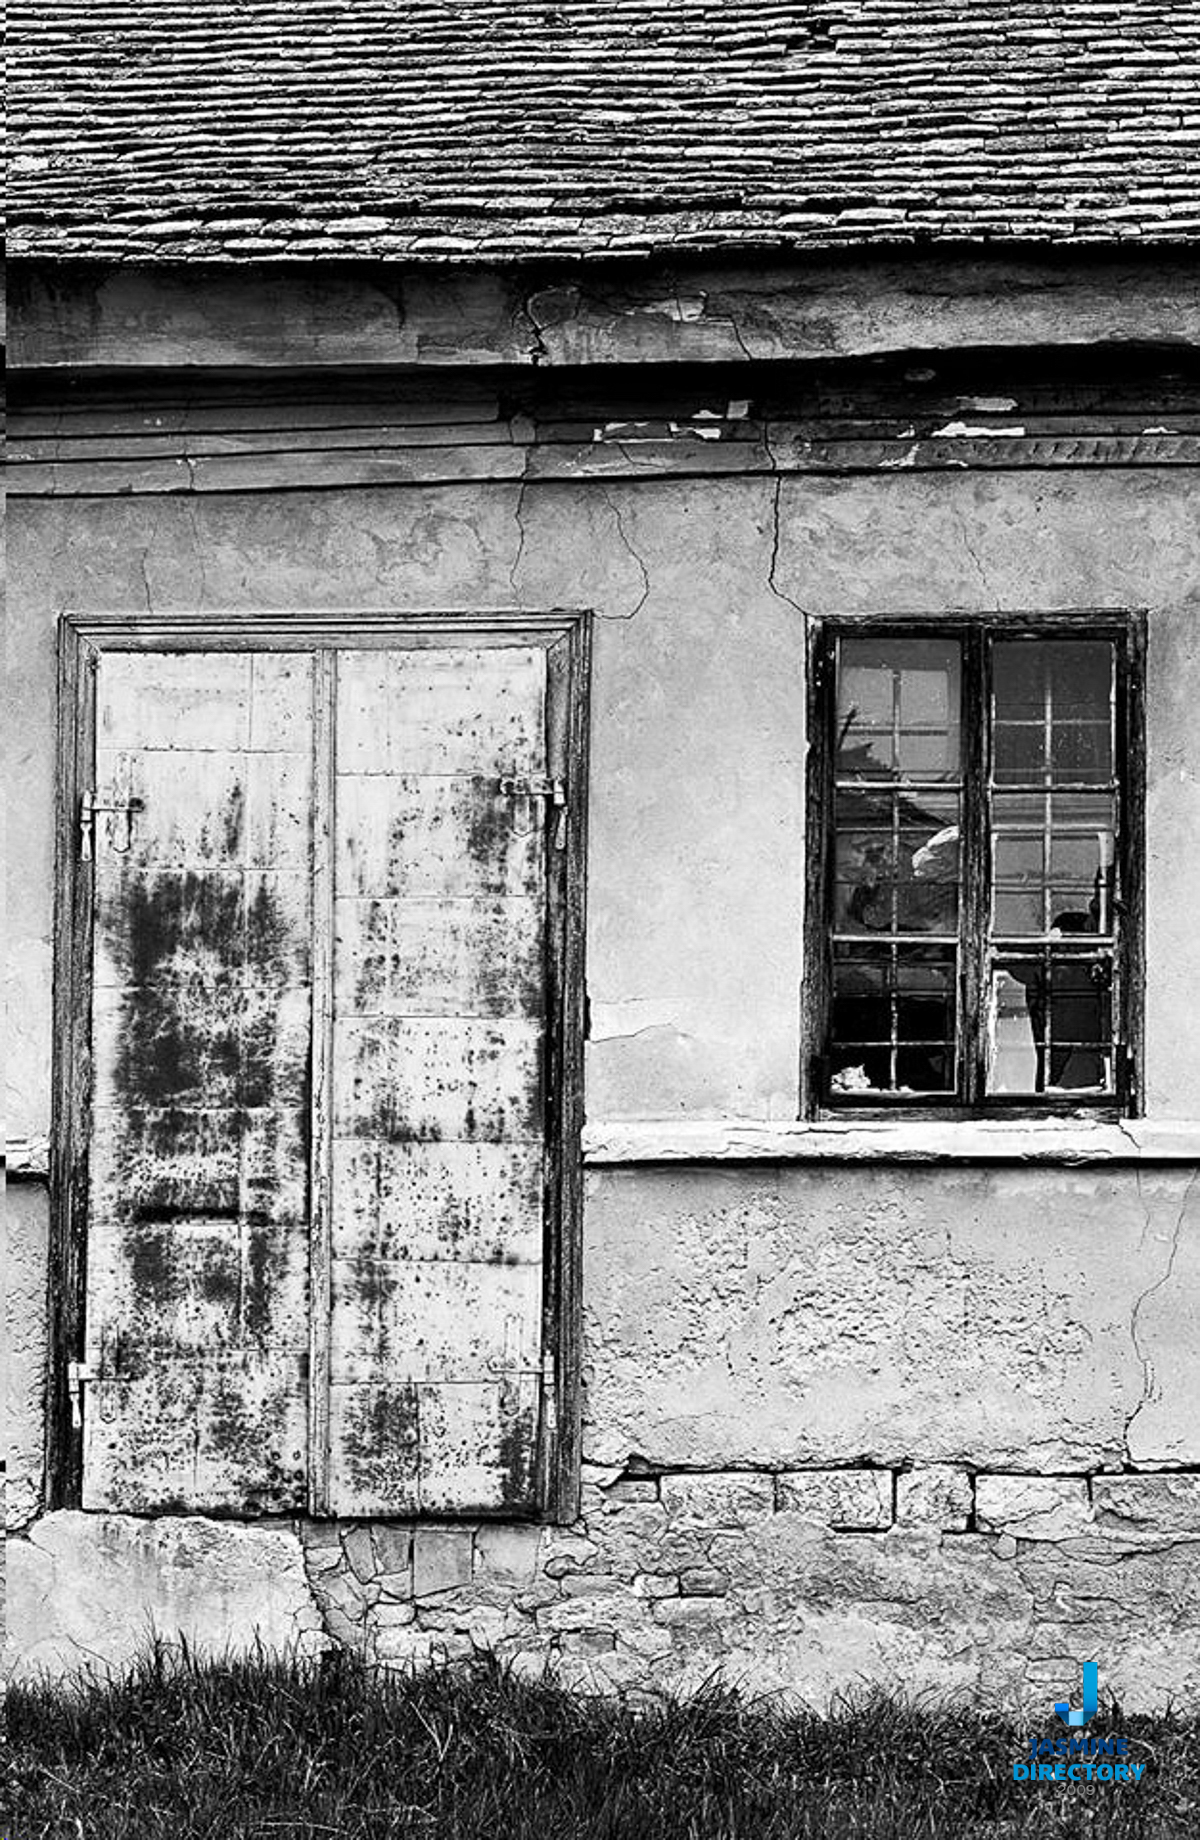 Asymmetrical Balance on an old house with a door and window